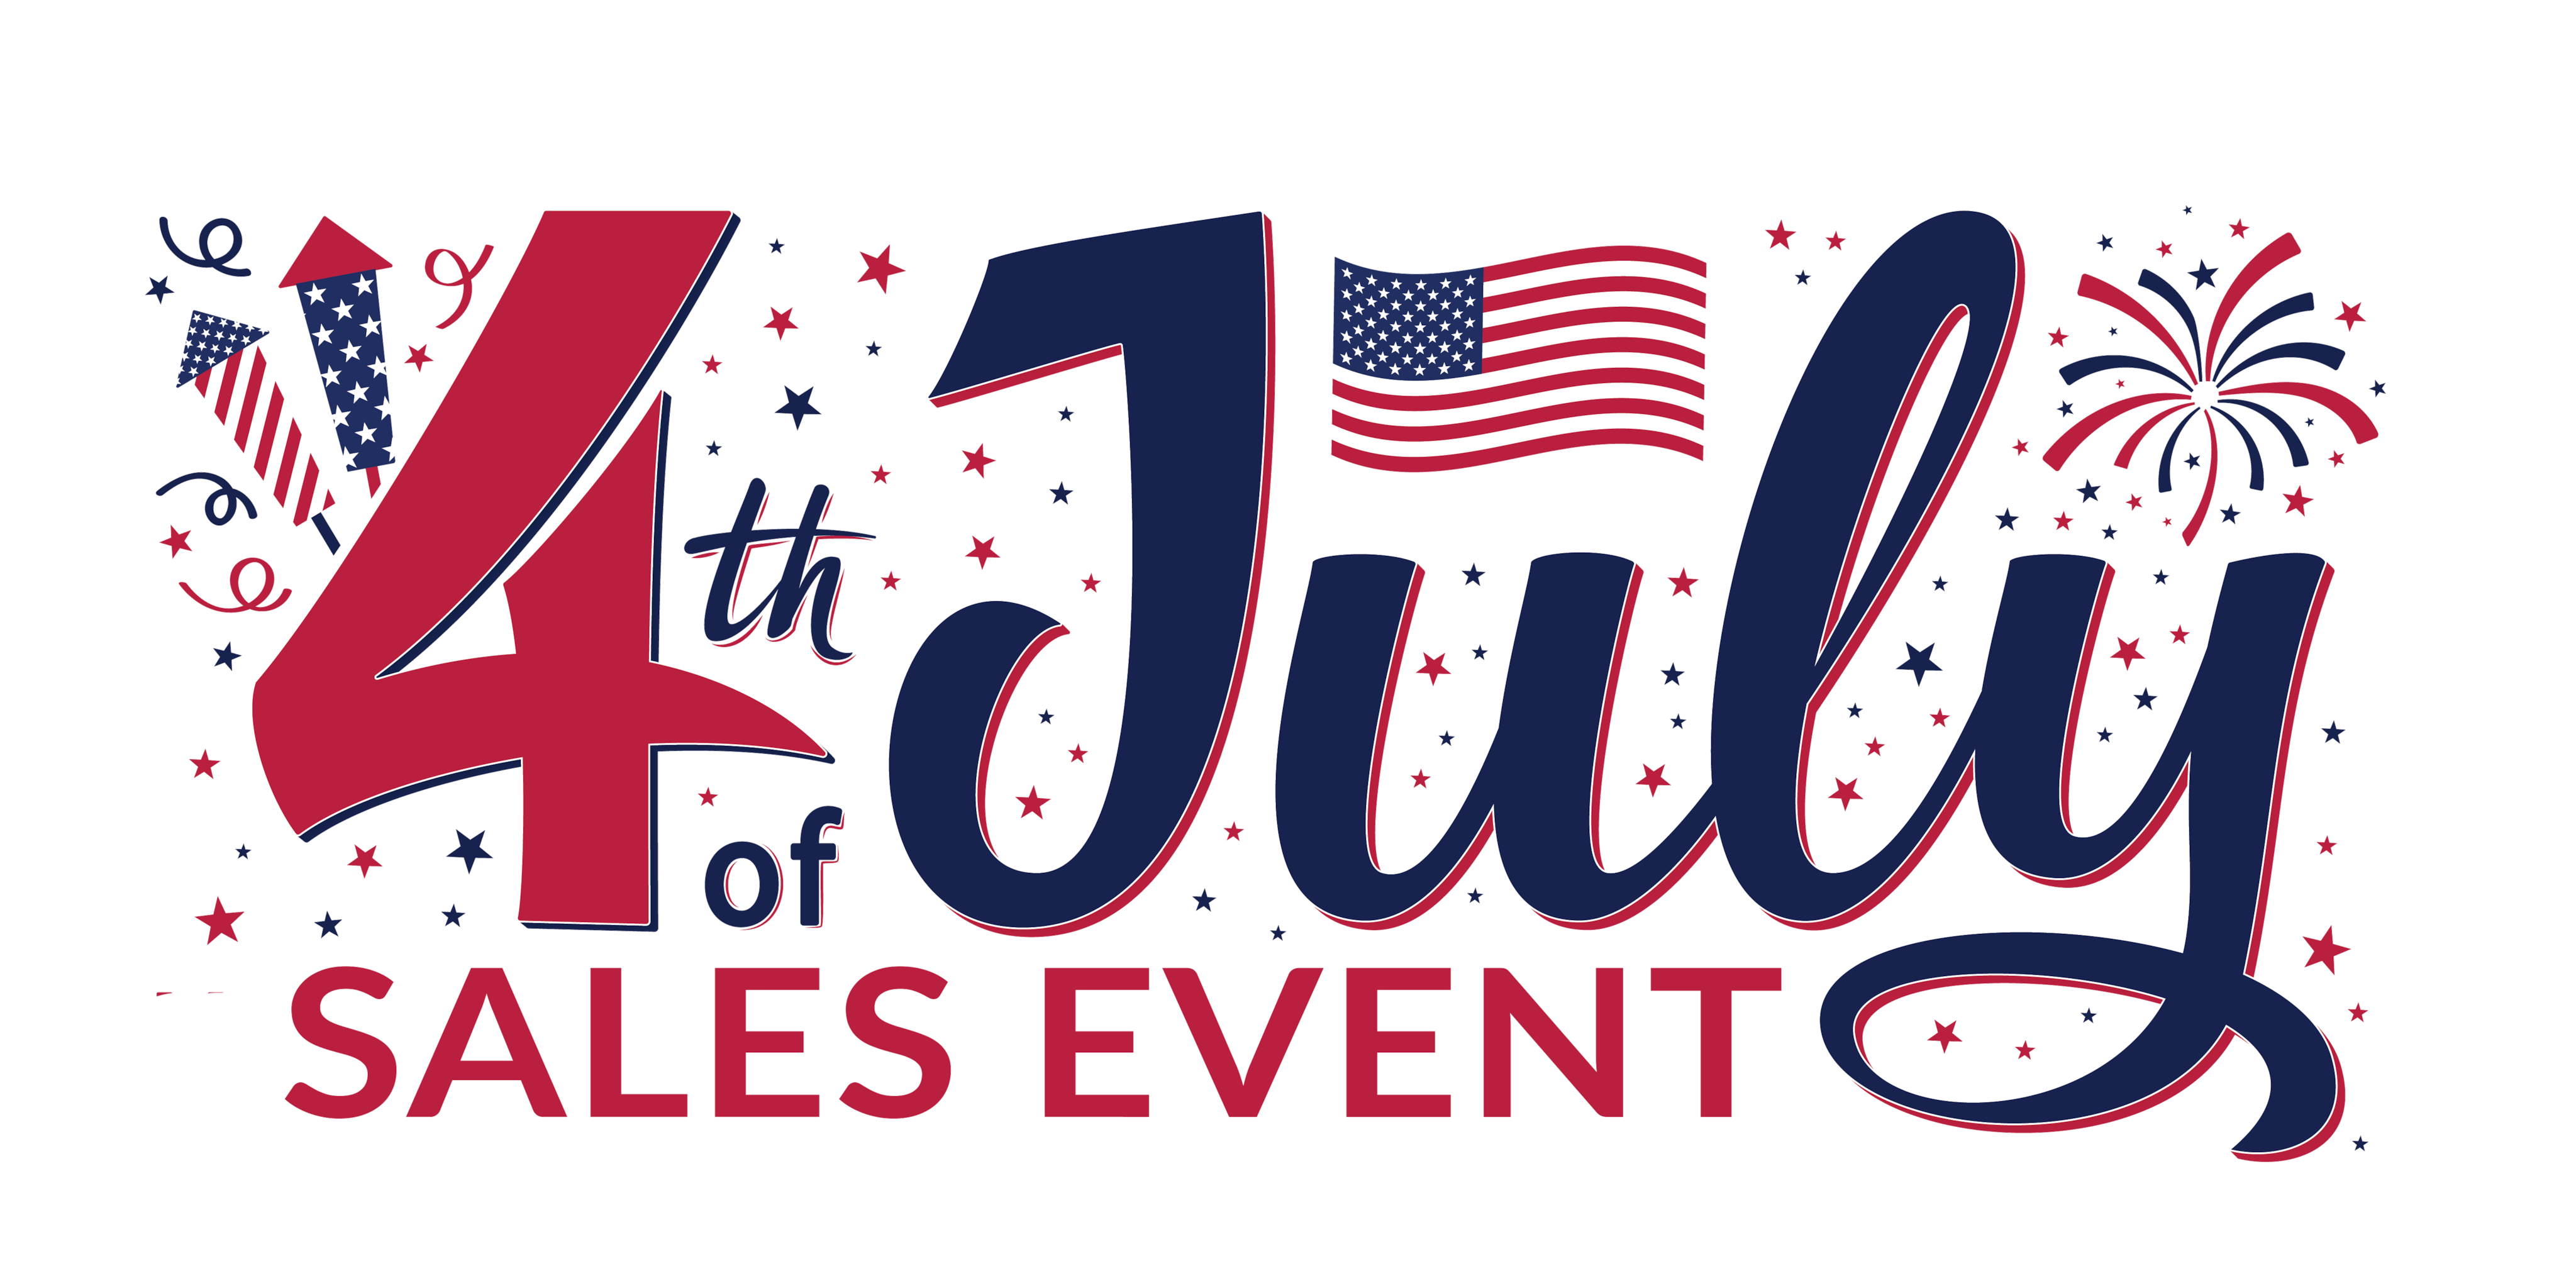 Red White and Blue 4th of July sales event logo